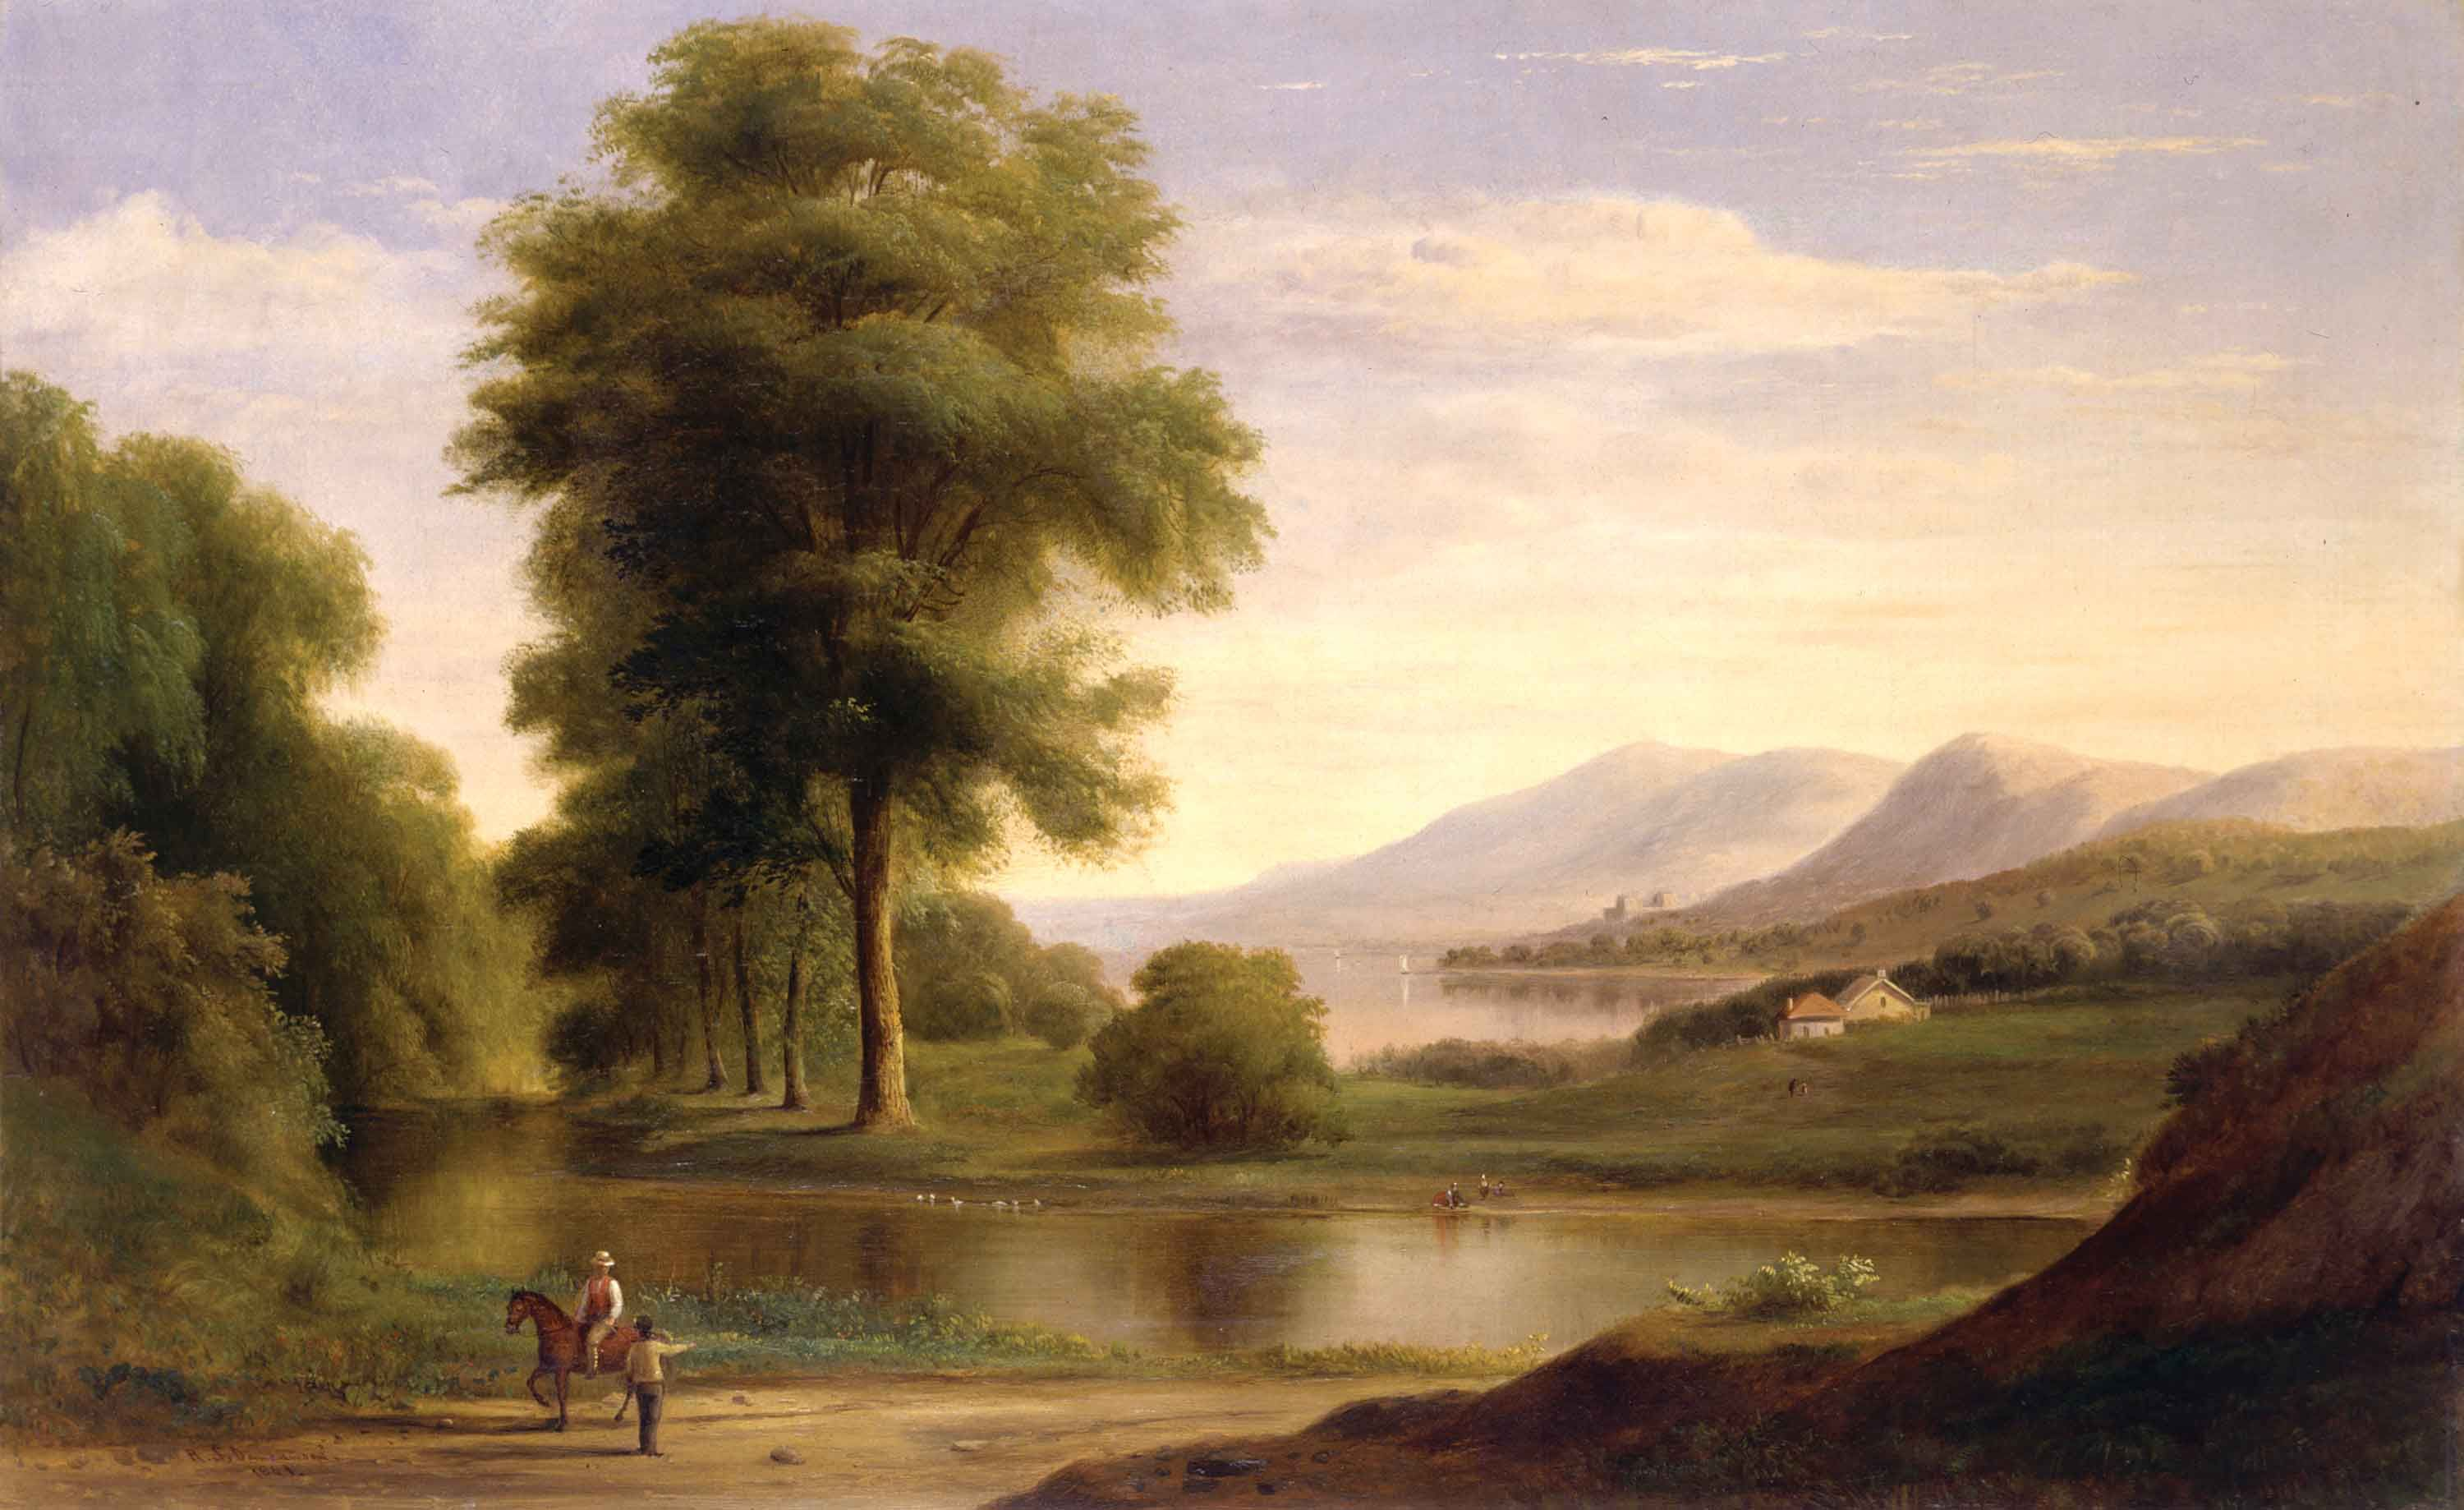 Hudson River Valley style art, untitled, by:  Robert s. Duncanson